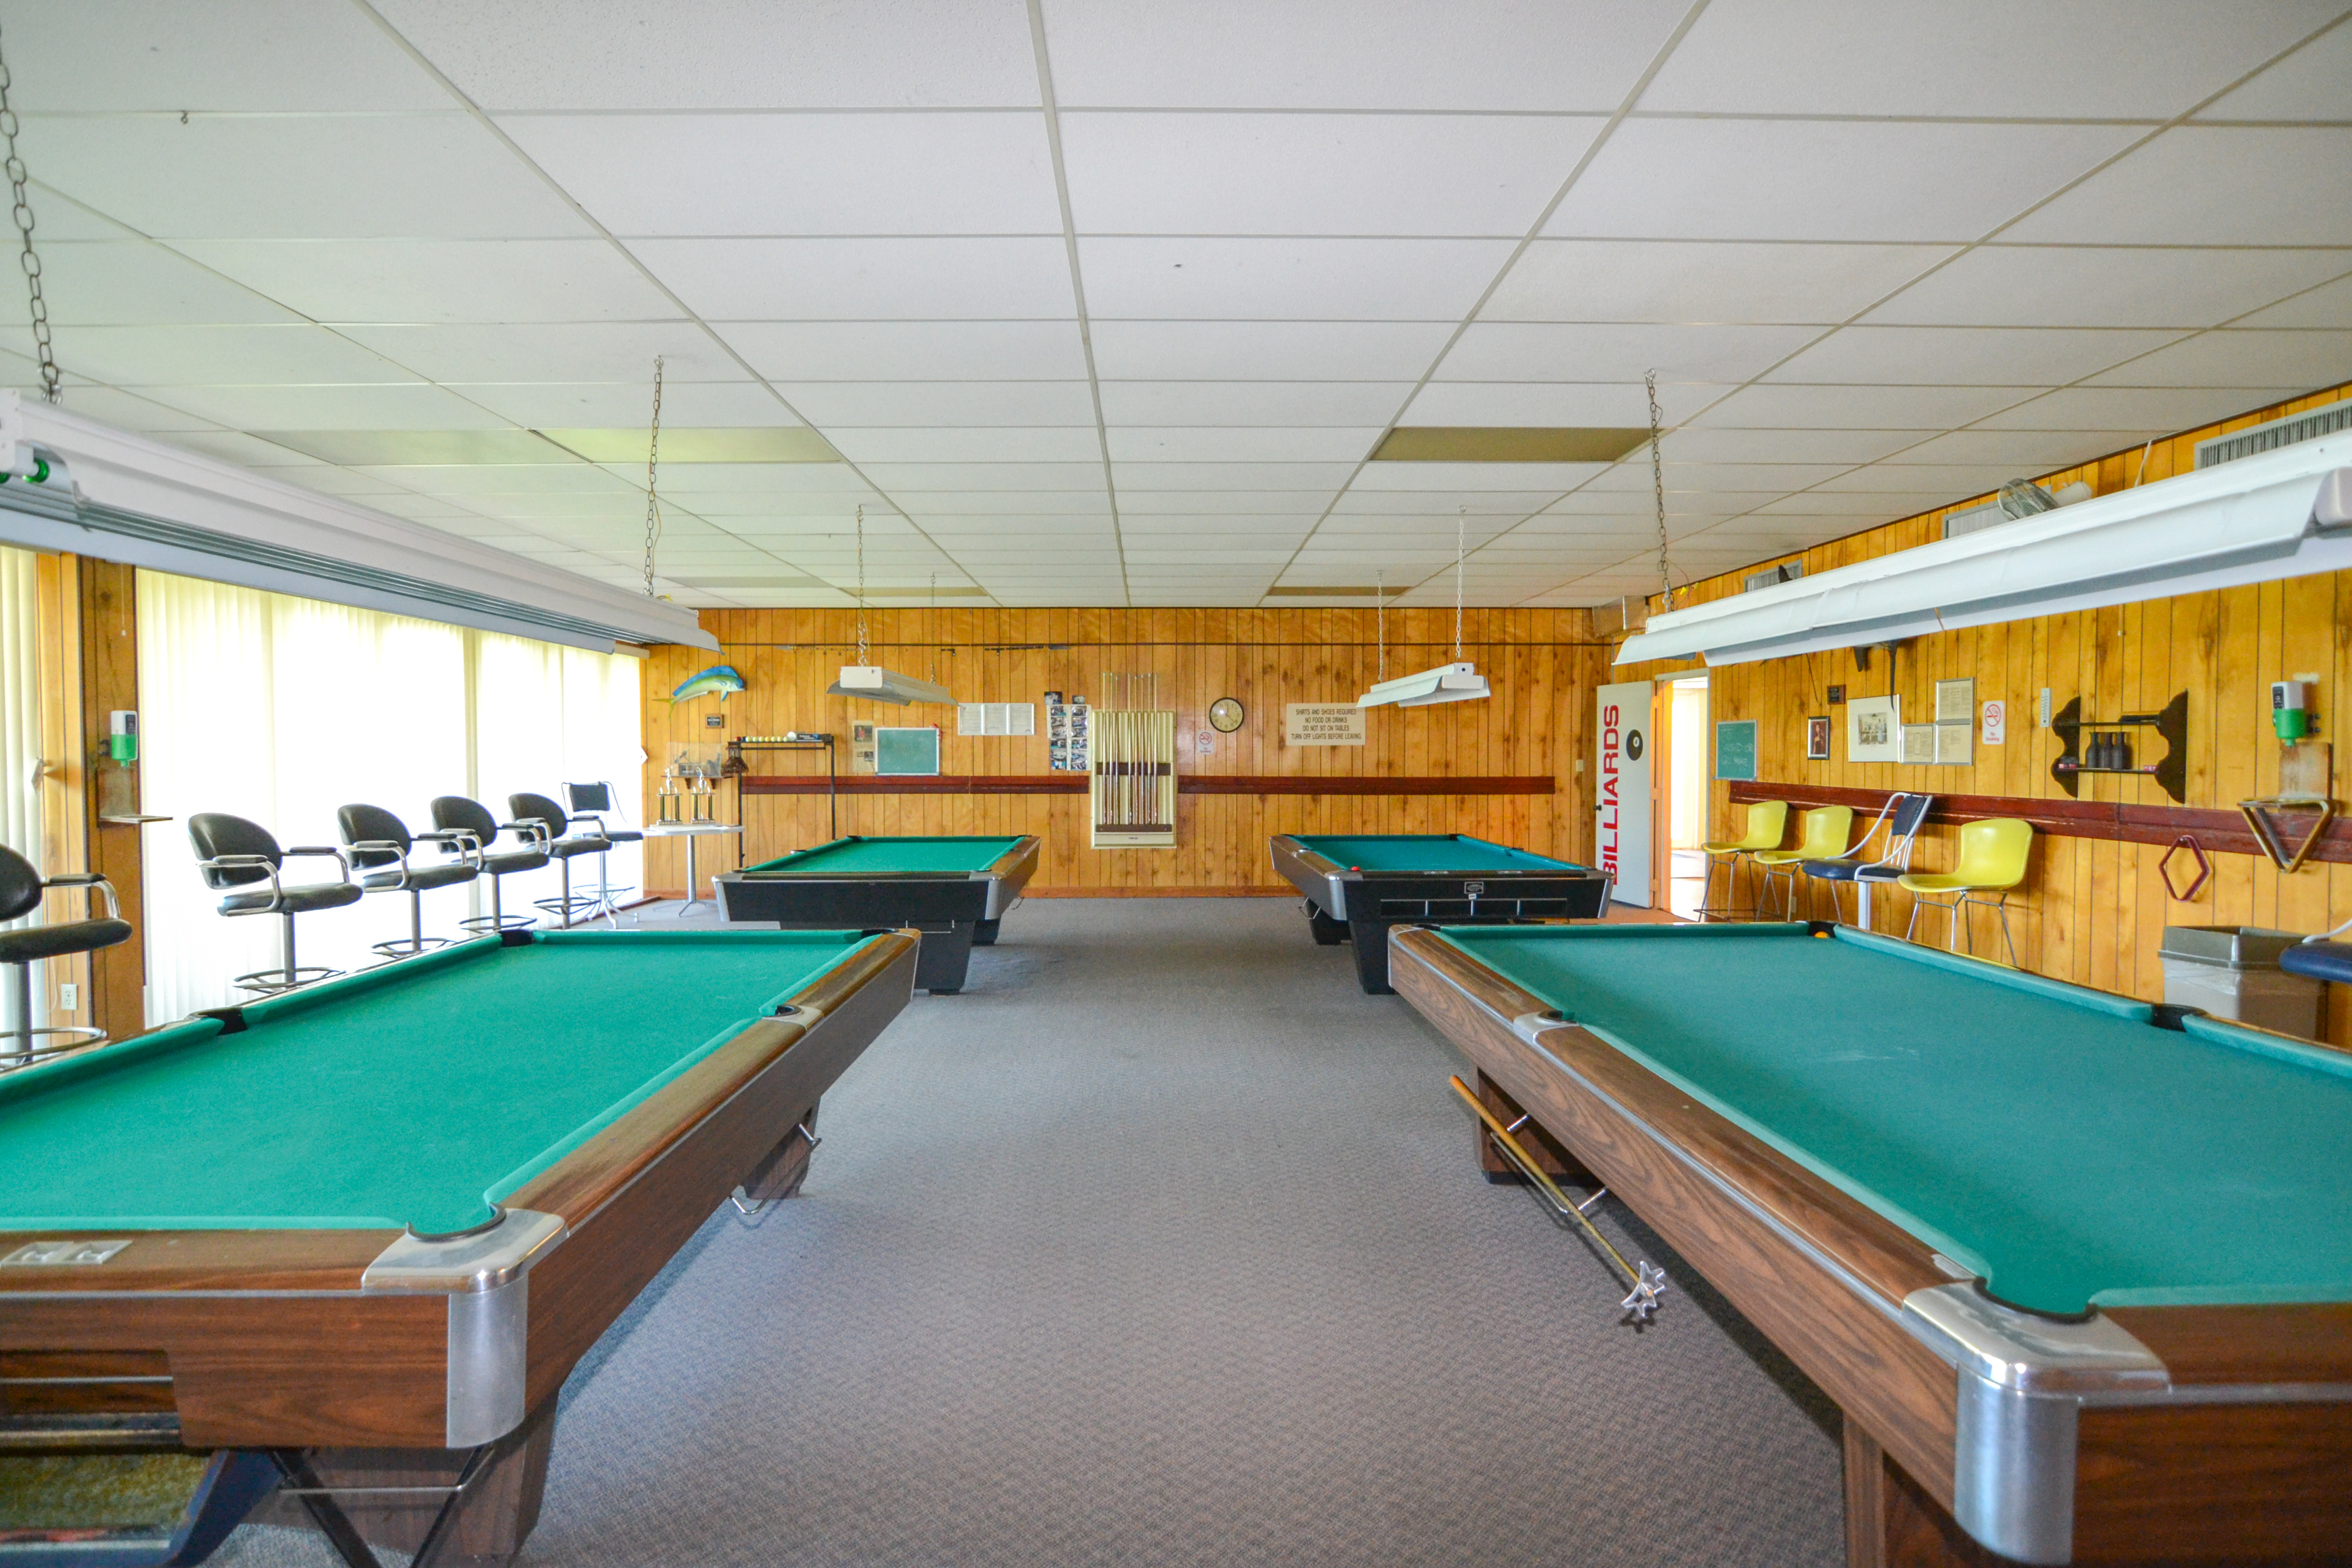 Billiards Room at Bay Island